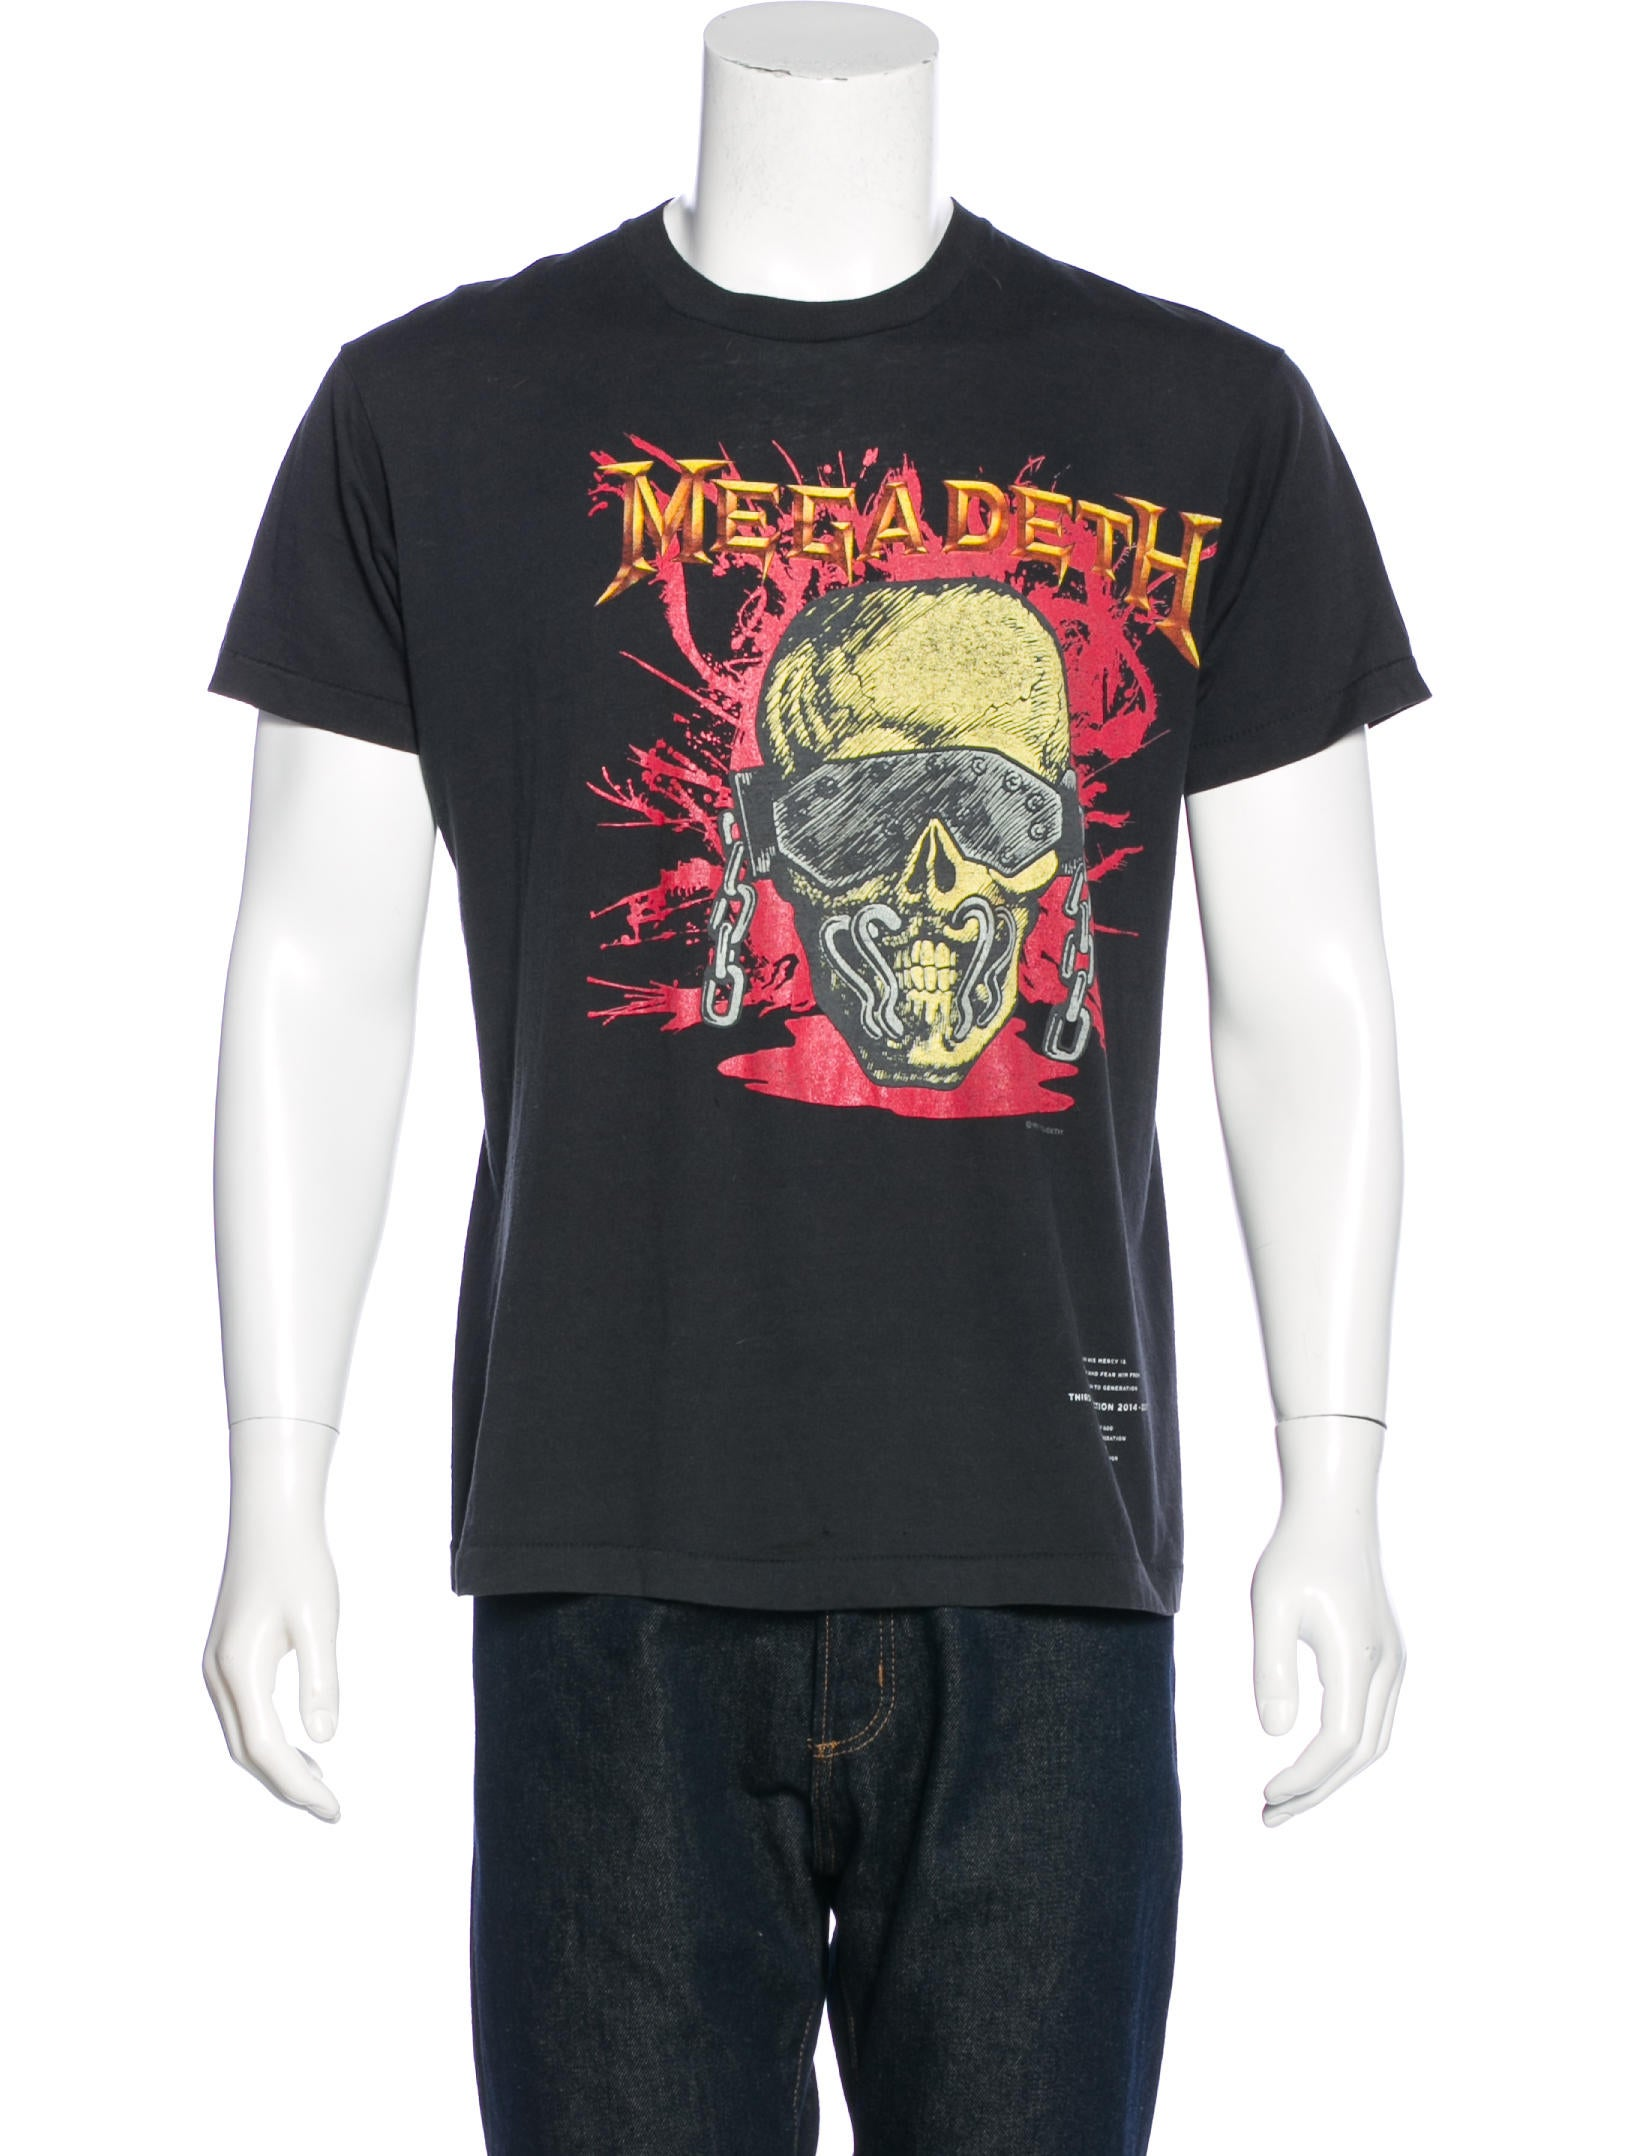 149082ecb01f Fear Of God Megadeth Resurrected T-Shirt - Clothing - FOG20052